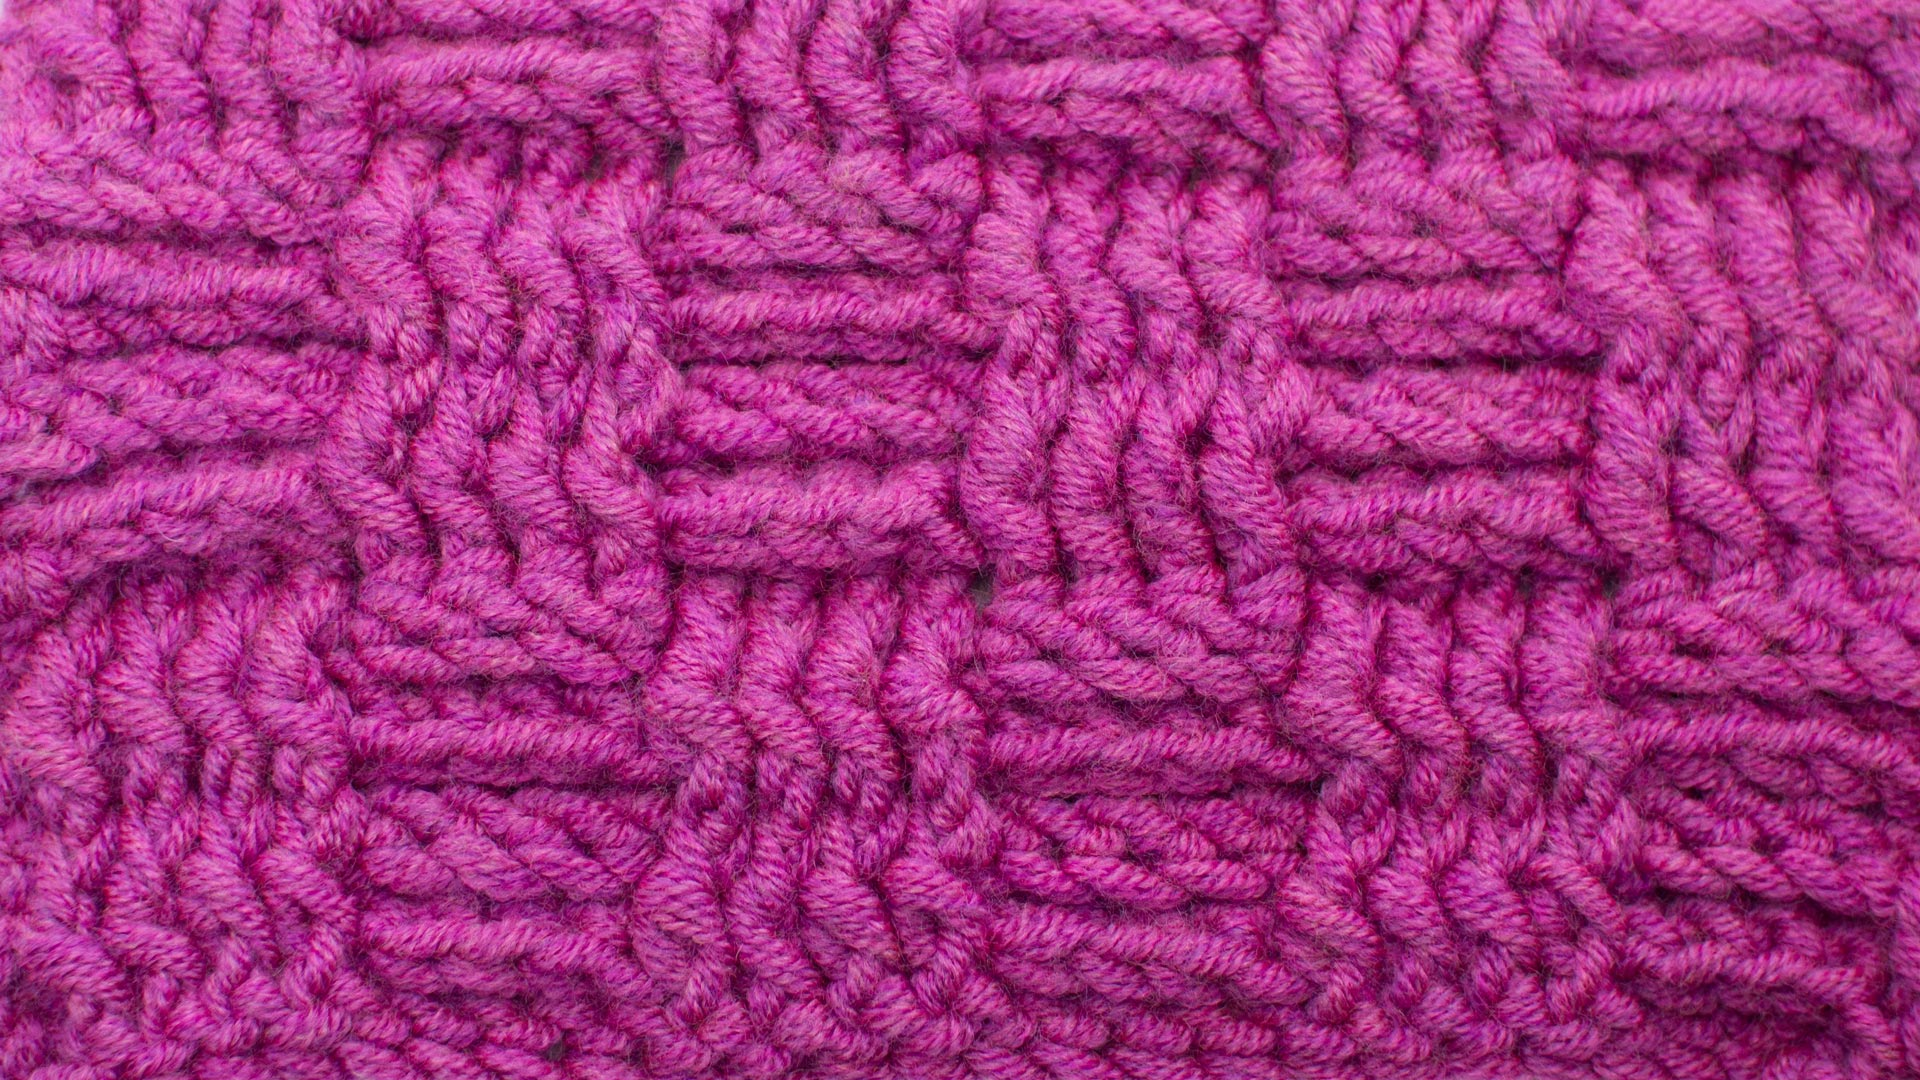 crochet stitches basketweave stitch :: crochet stitch :: new stitch a day kfsrwuu